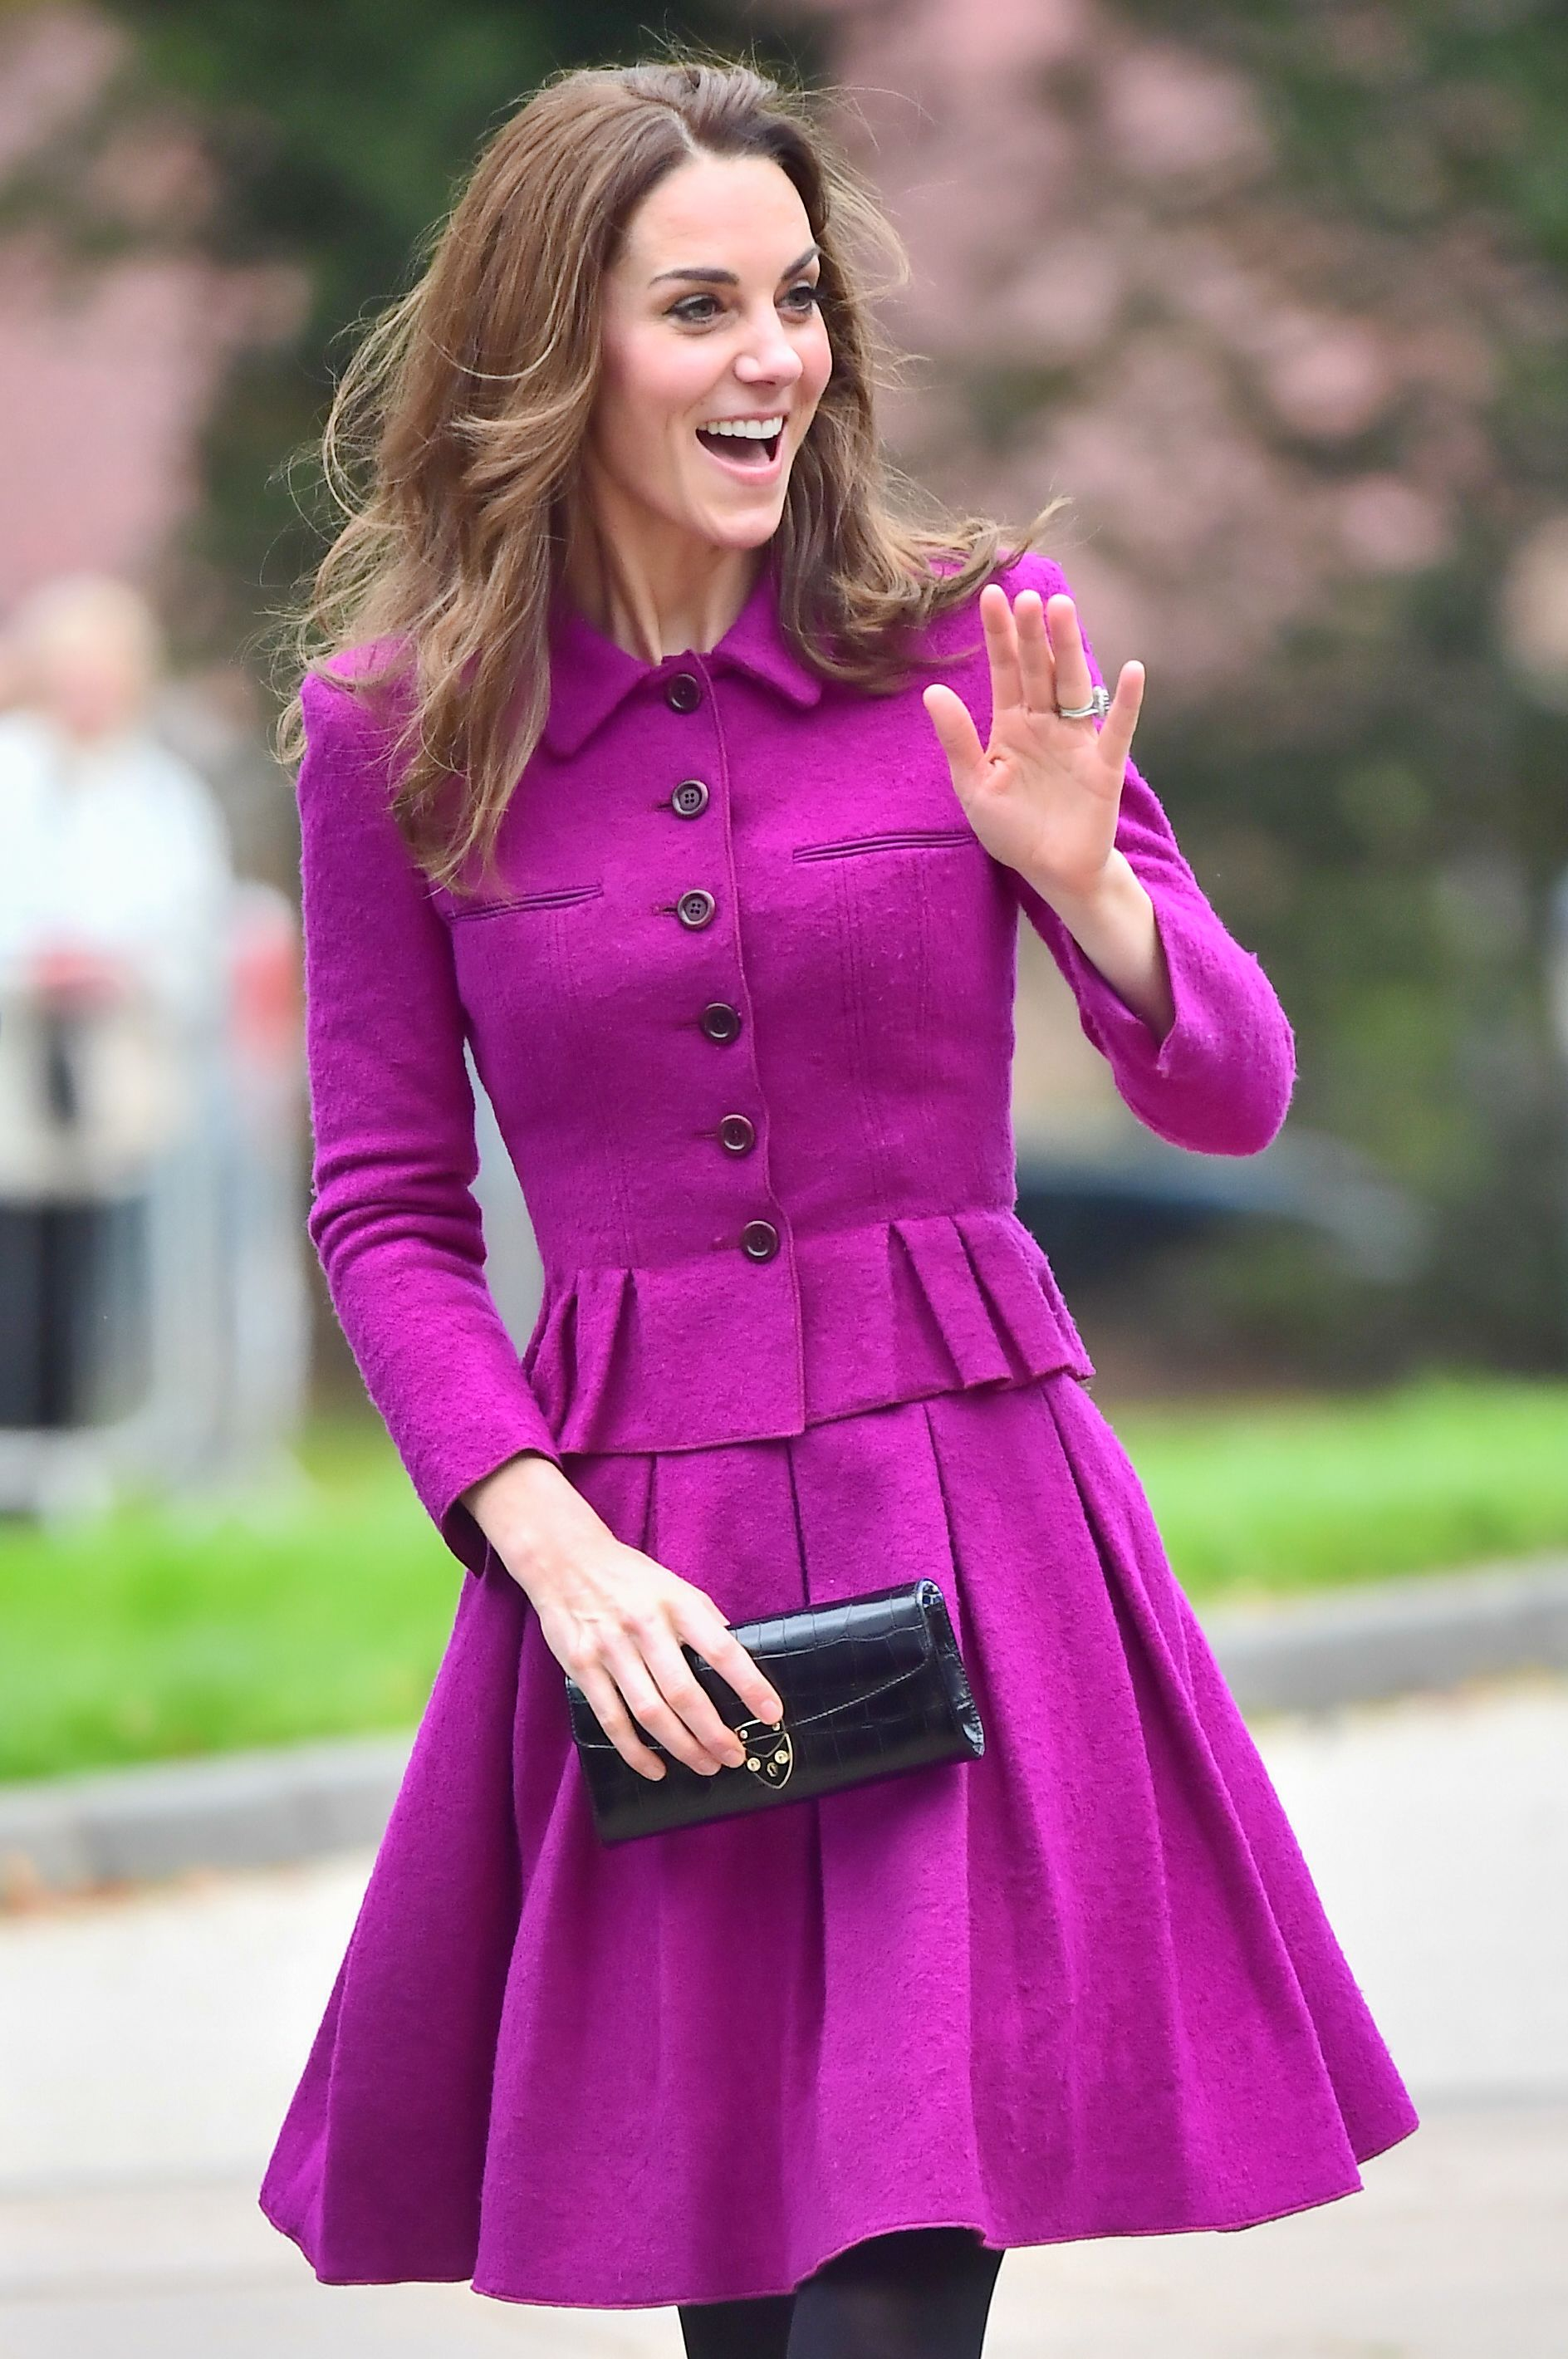 The Duchess of Cambridge wows in purple to open new children's hospice